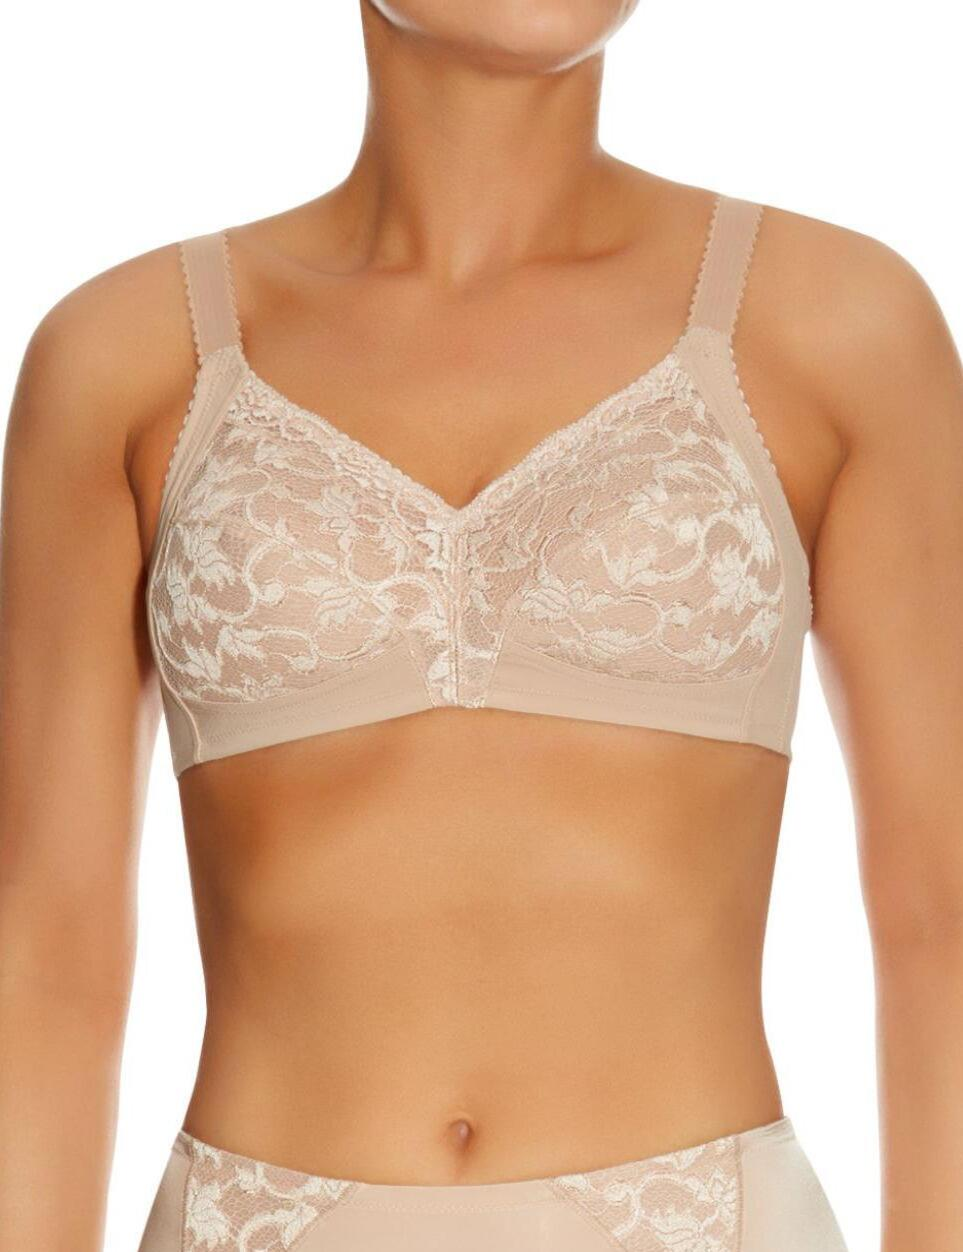 bd6a1c3f61 Triumph Delicate Doreen N Non Wired Full Cup Supportive Soft Lace ...